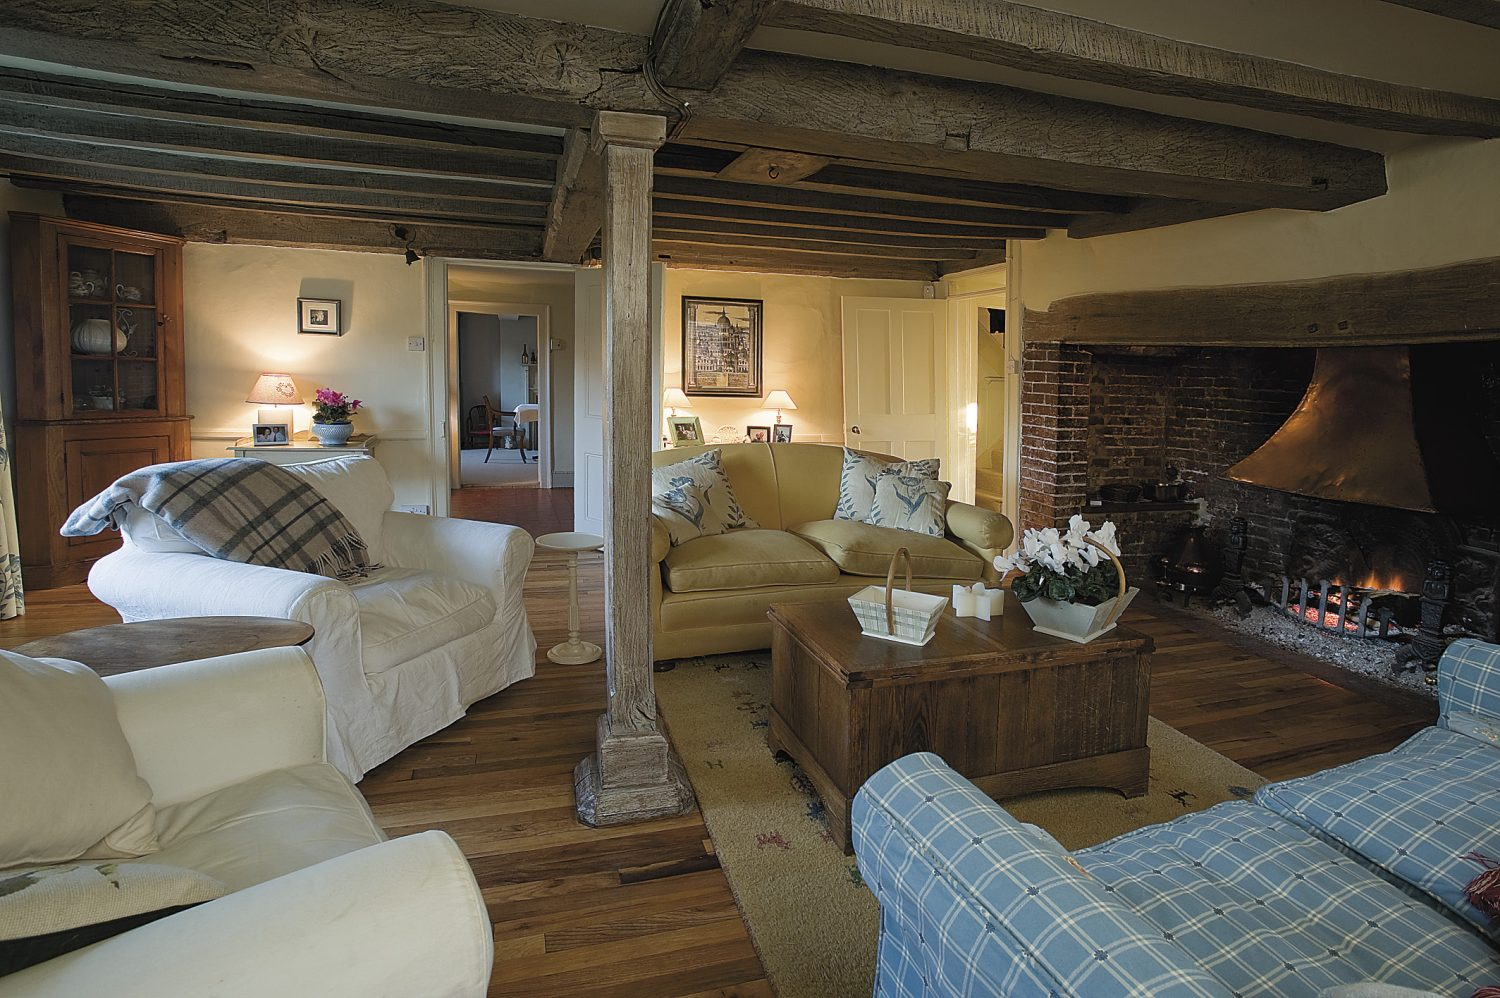 the sitting room was originally the farmhouse kitchen. The beams have been sanded, limed and waxed